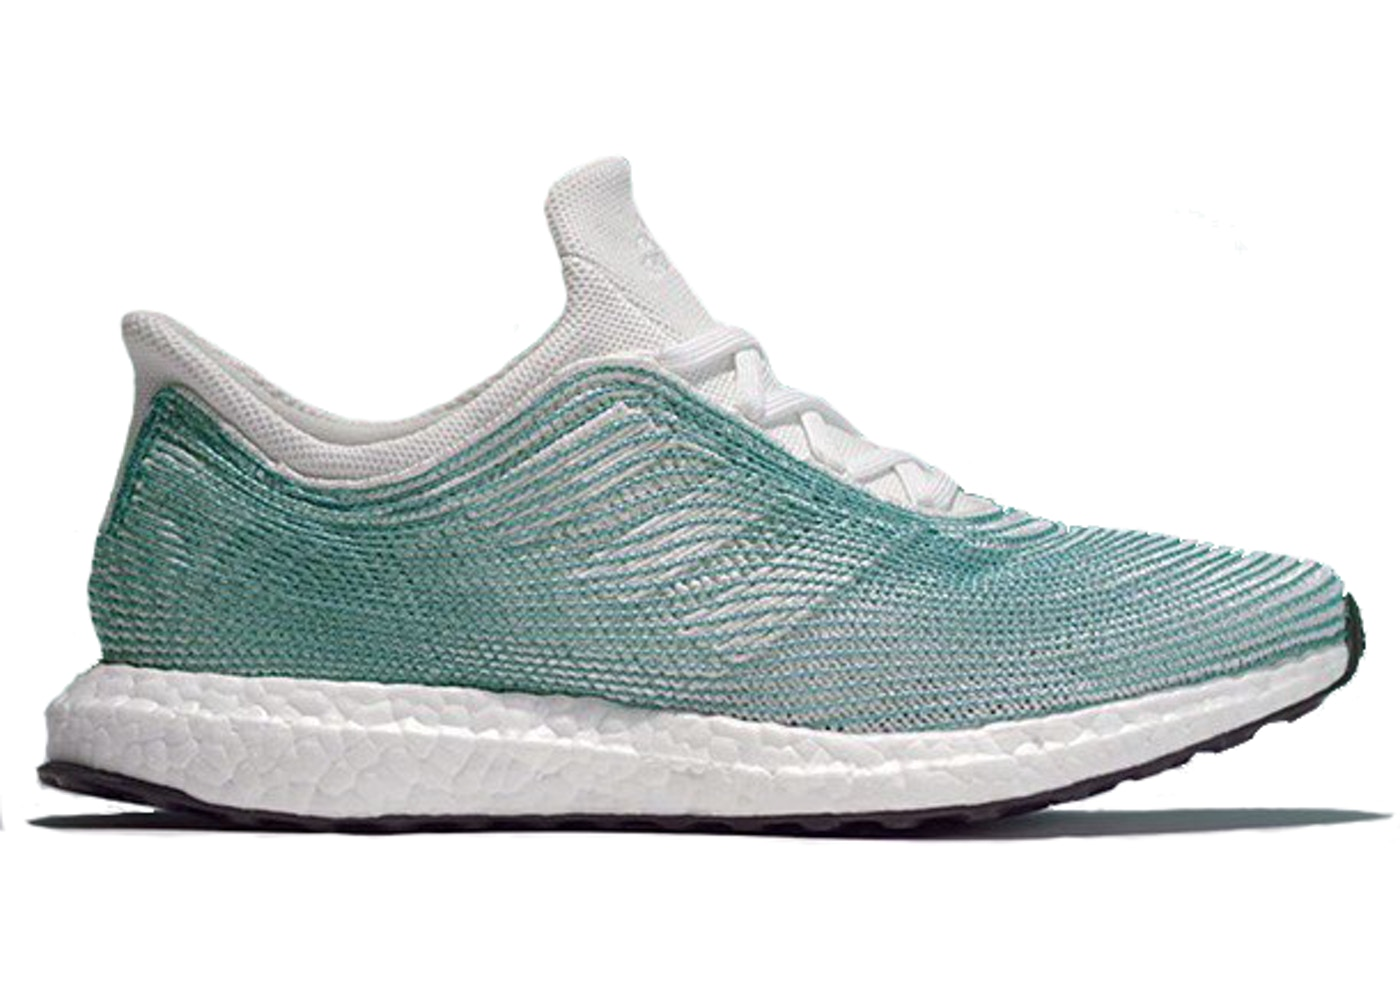 huge discount bcba0 42d11 adidas Ultra Boost Uncaged Parley For the Oceans